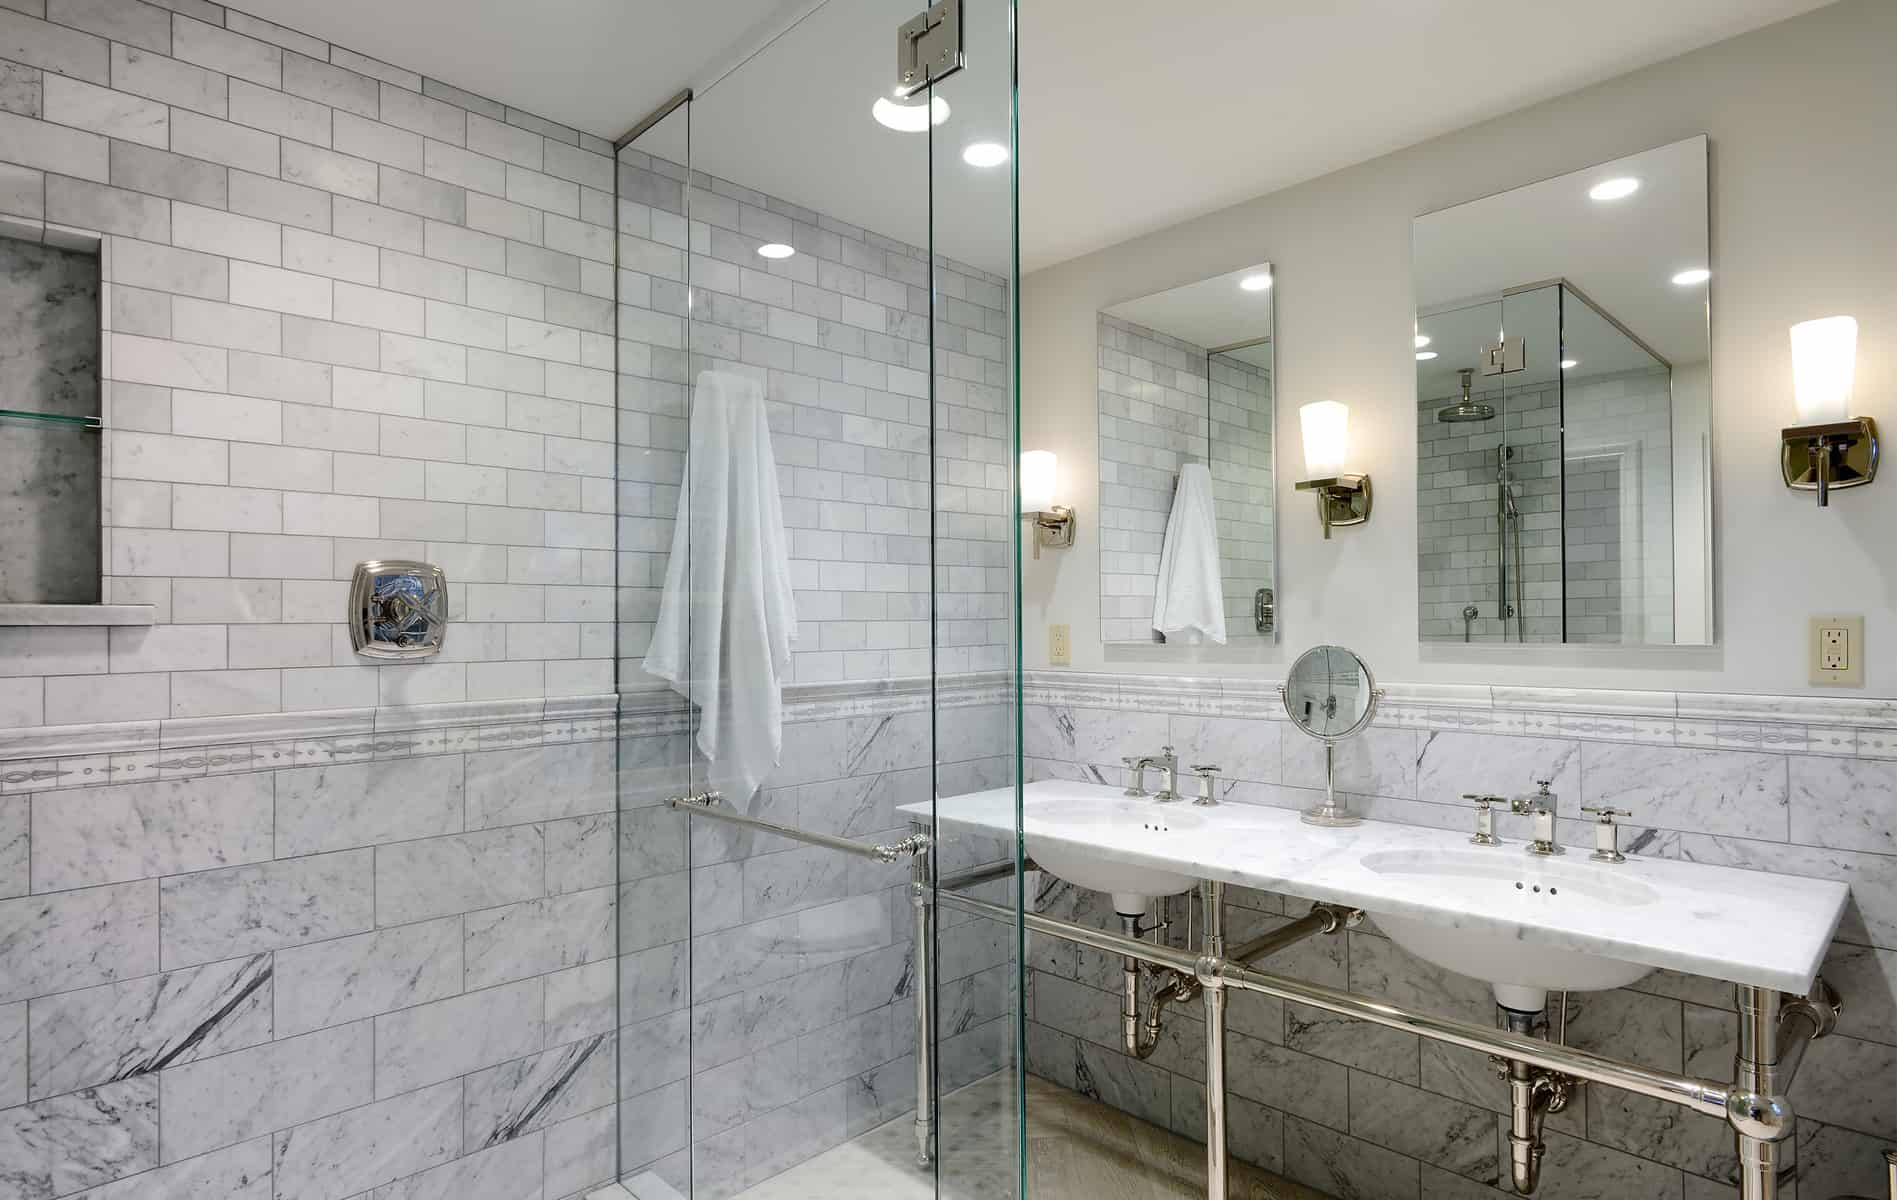 7 smart strategies for bathroom remodeling biederman for Bathroom improvements